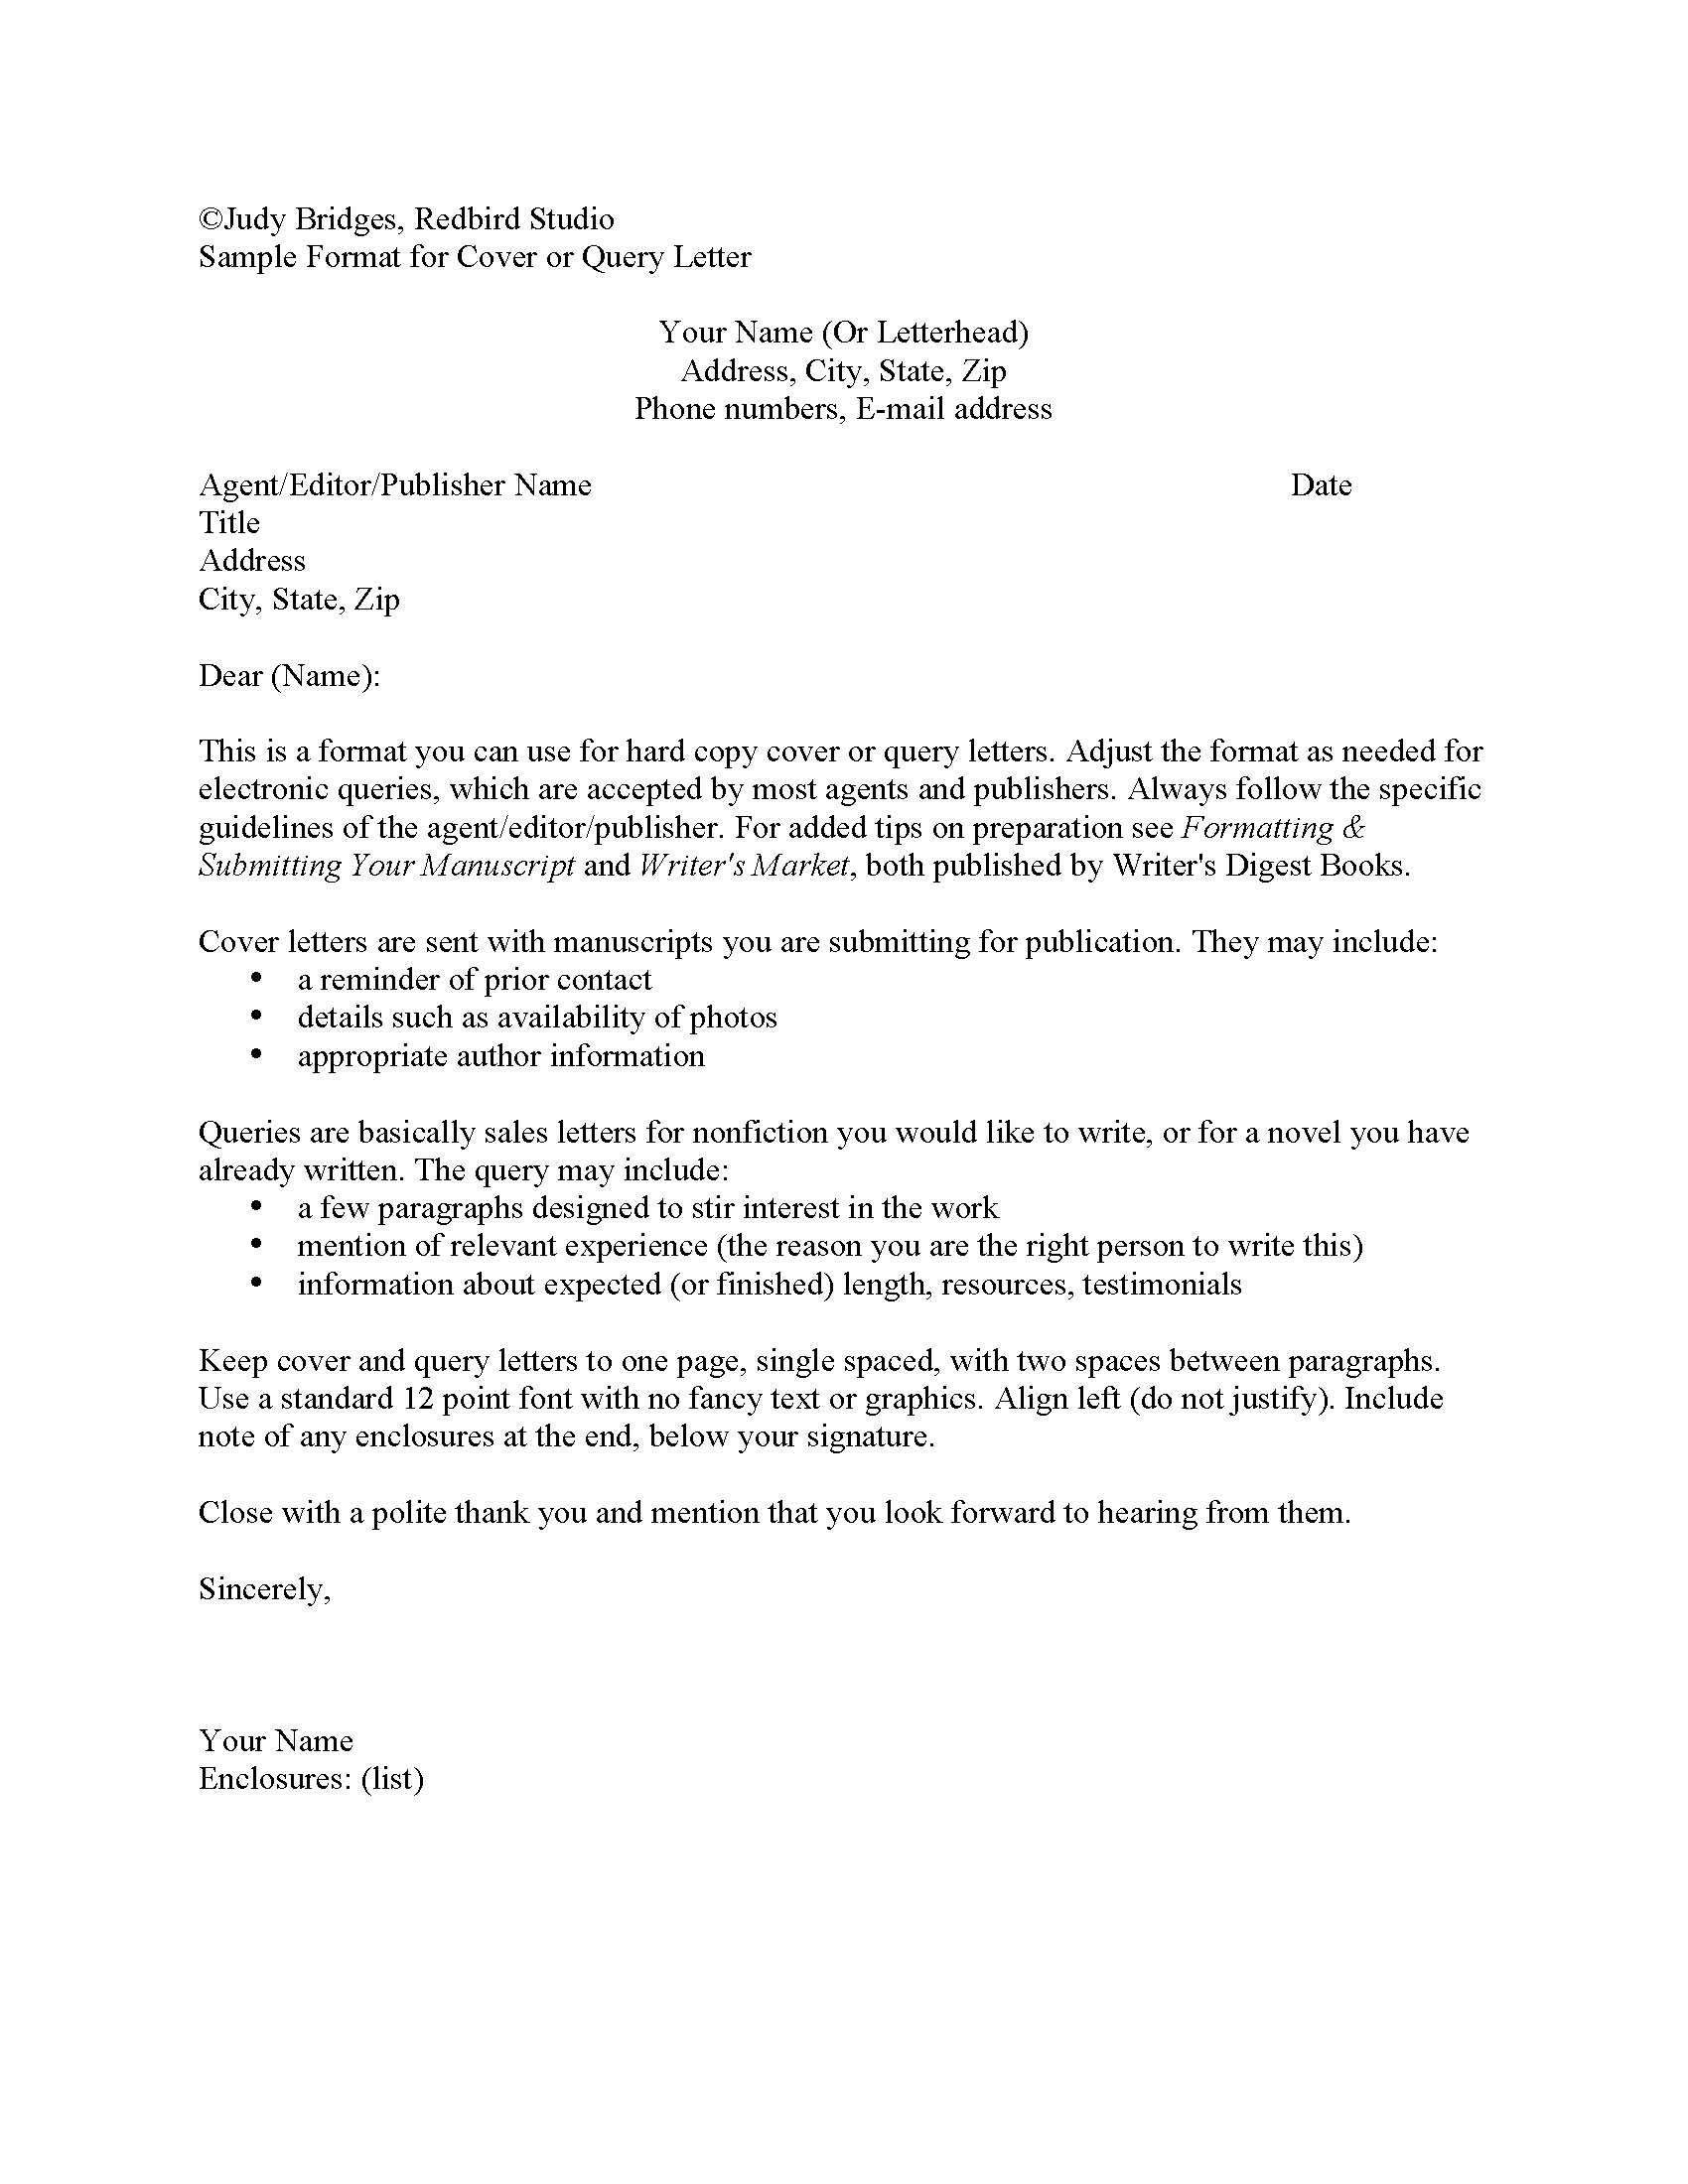 cover letter for writing submission sending resume and cover letter